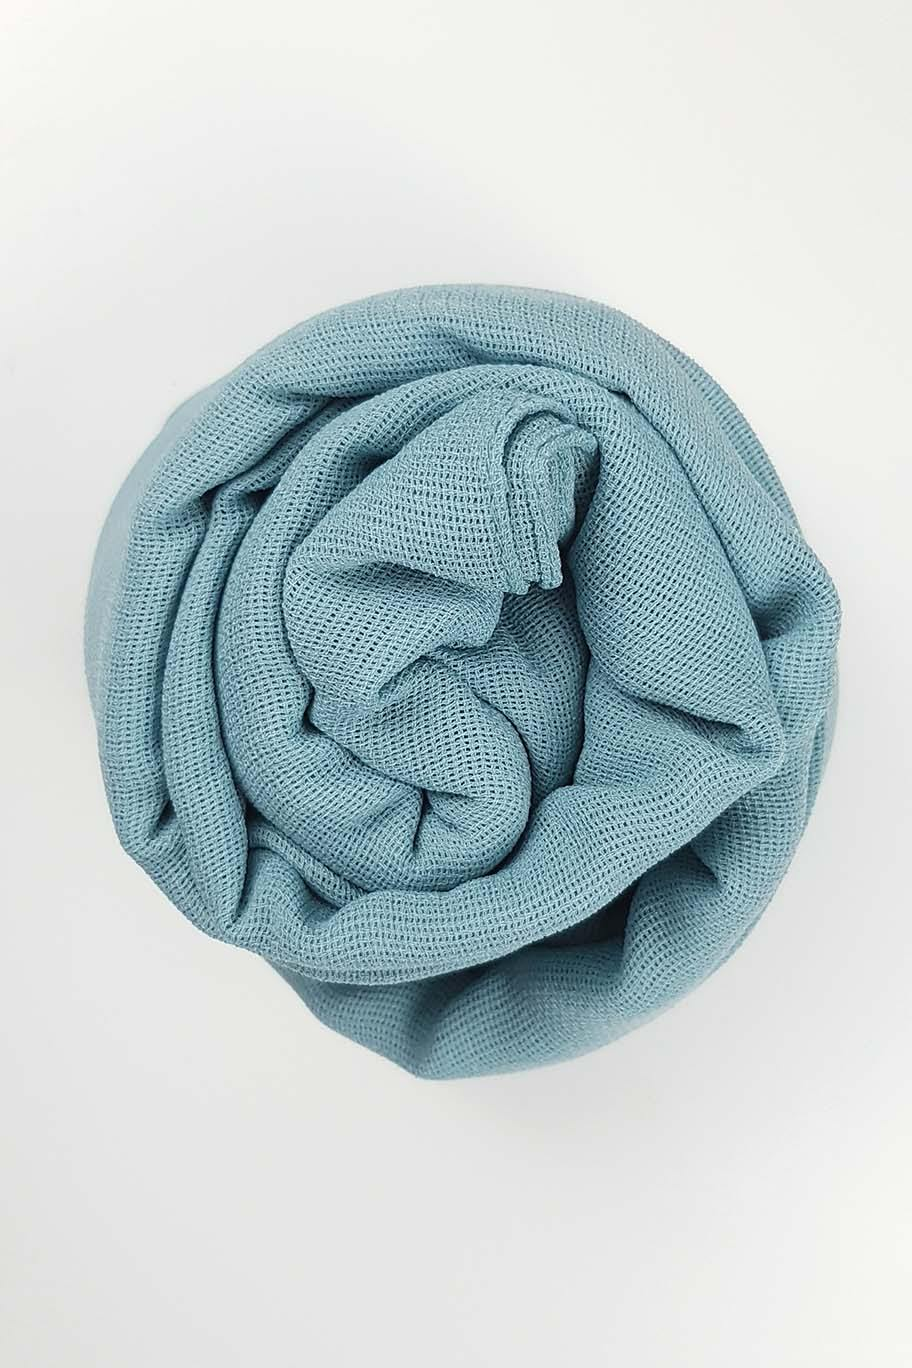 Mint Green Jute Cotton - Jute-Cotton Hijab - The Modest Look